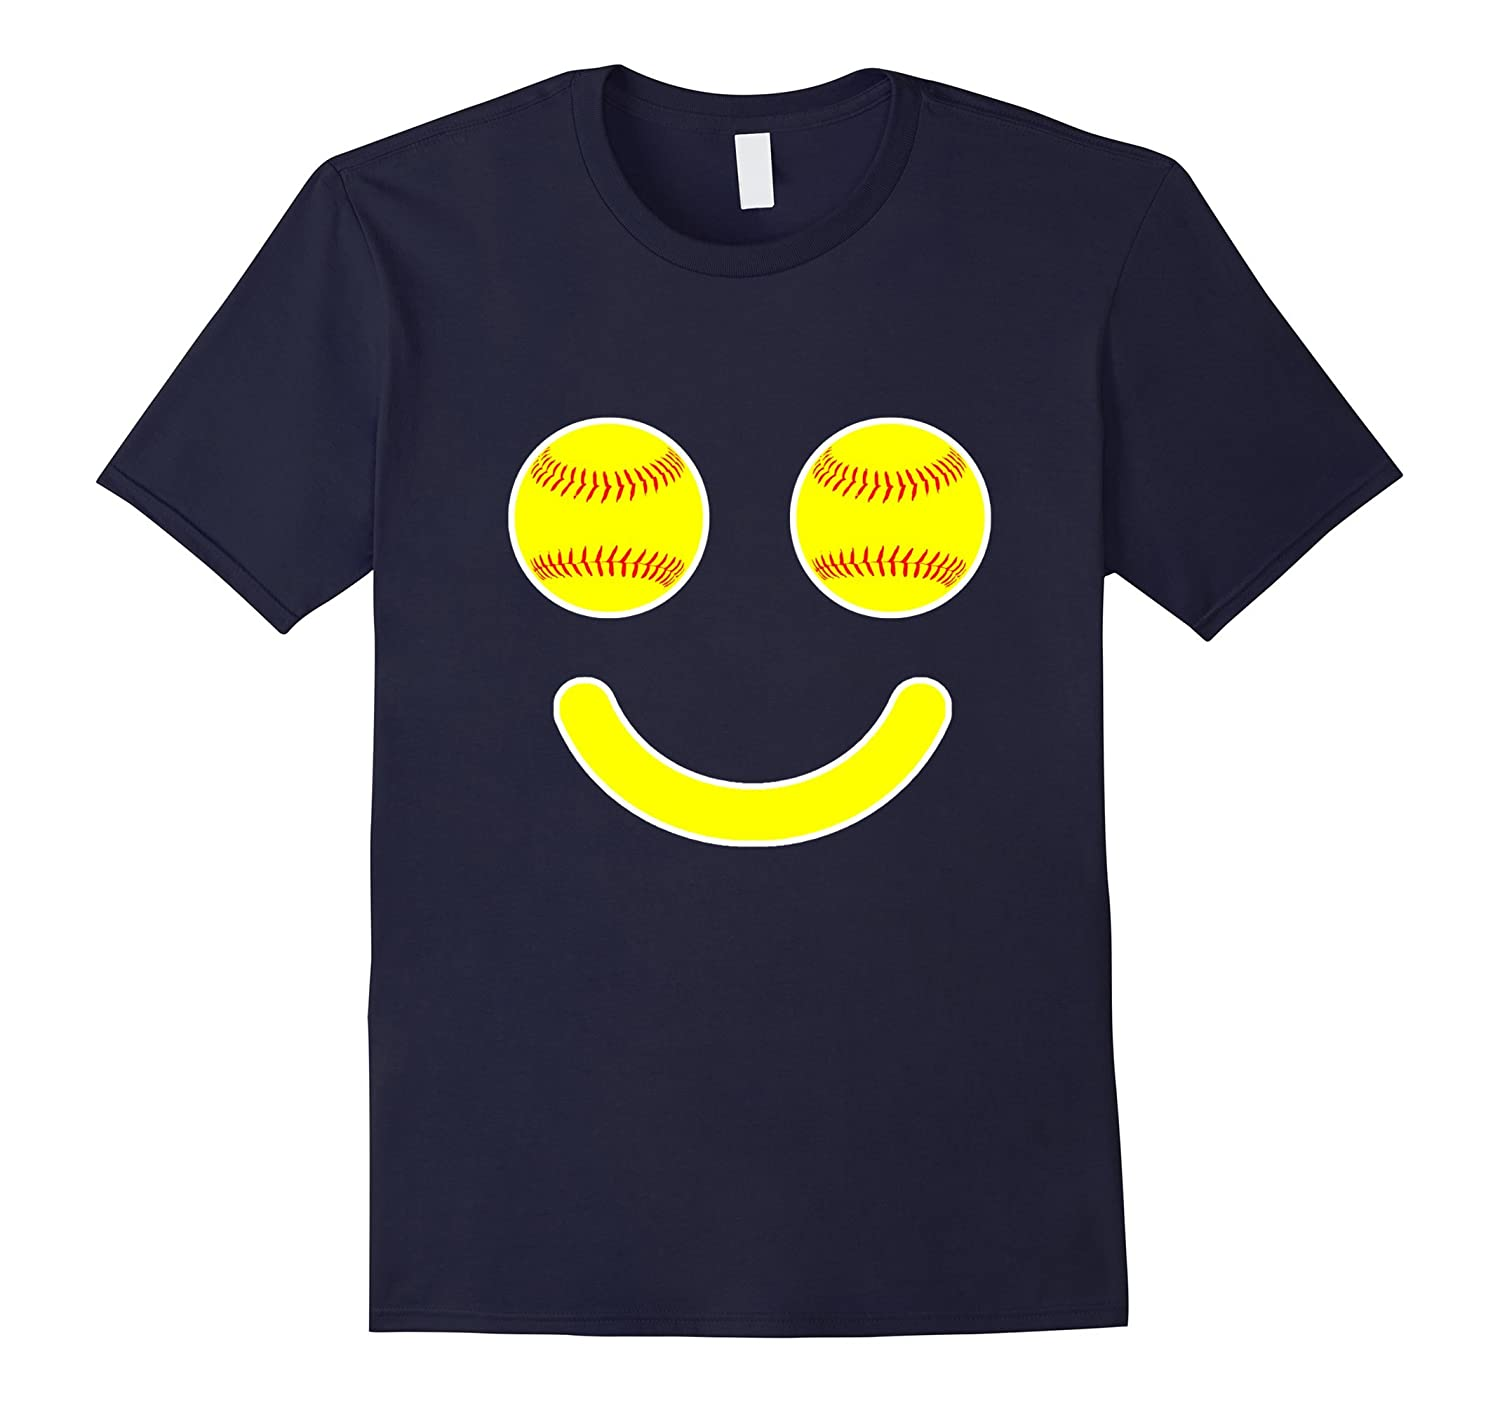 Softball Makes Me Smile | Funny Softball Mom or Player Shirt-Rose